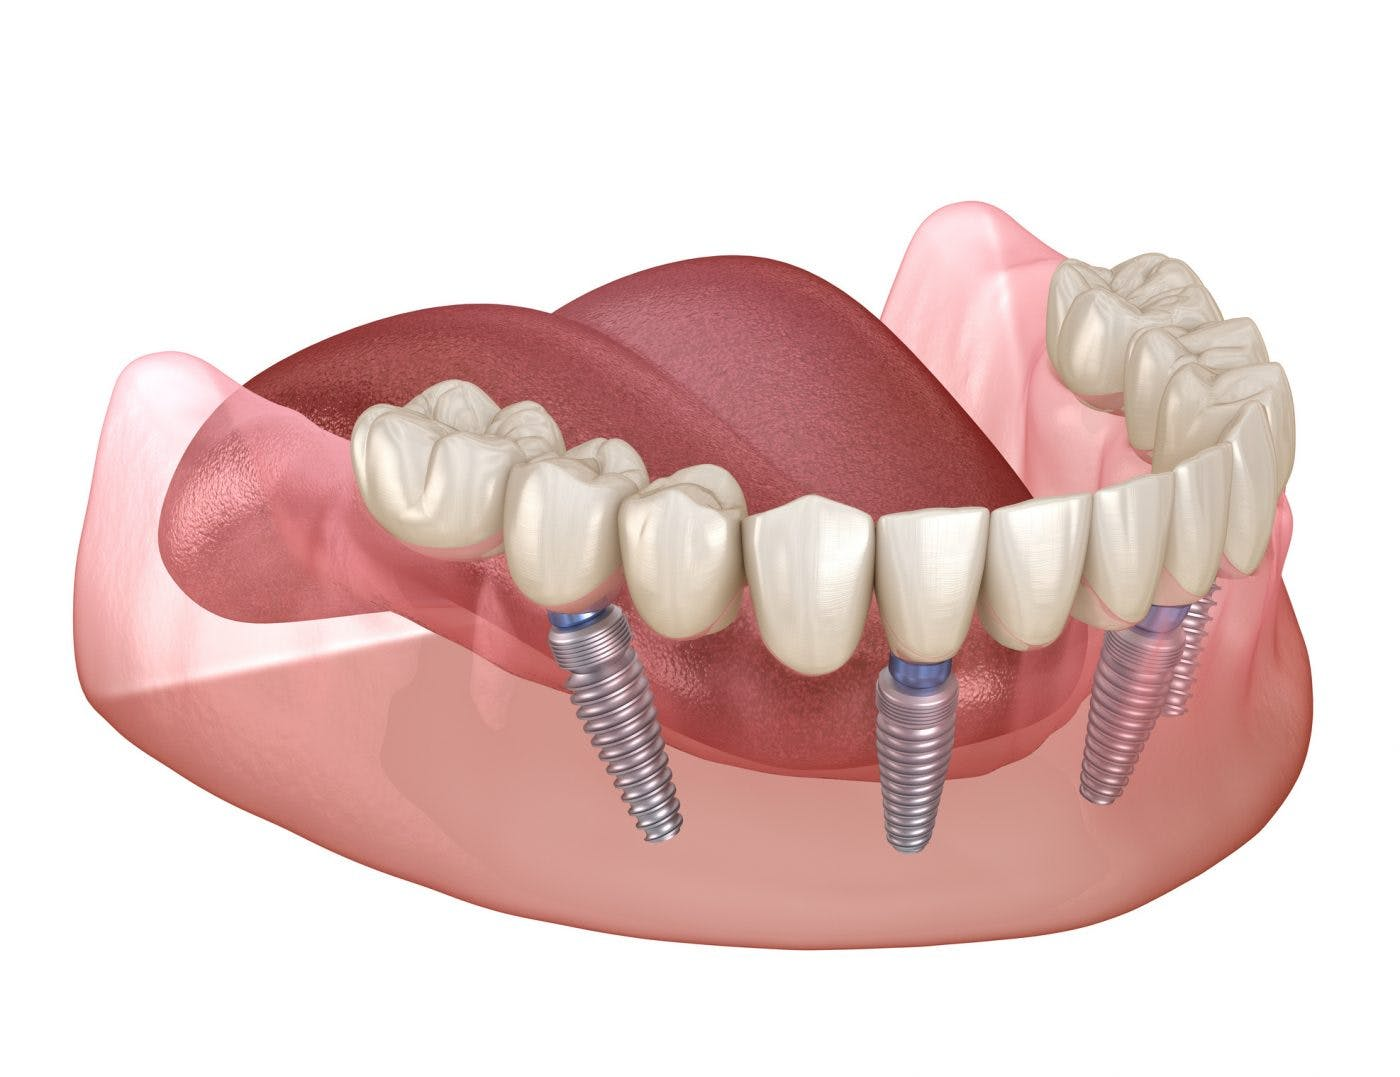 Dental Implants Solutions Missing Teeth 2